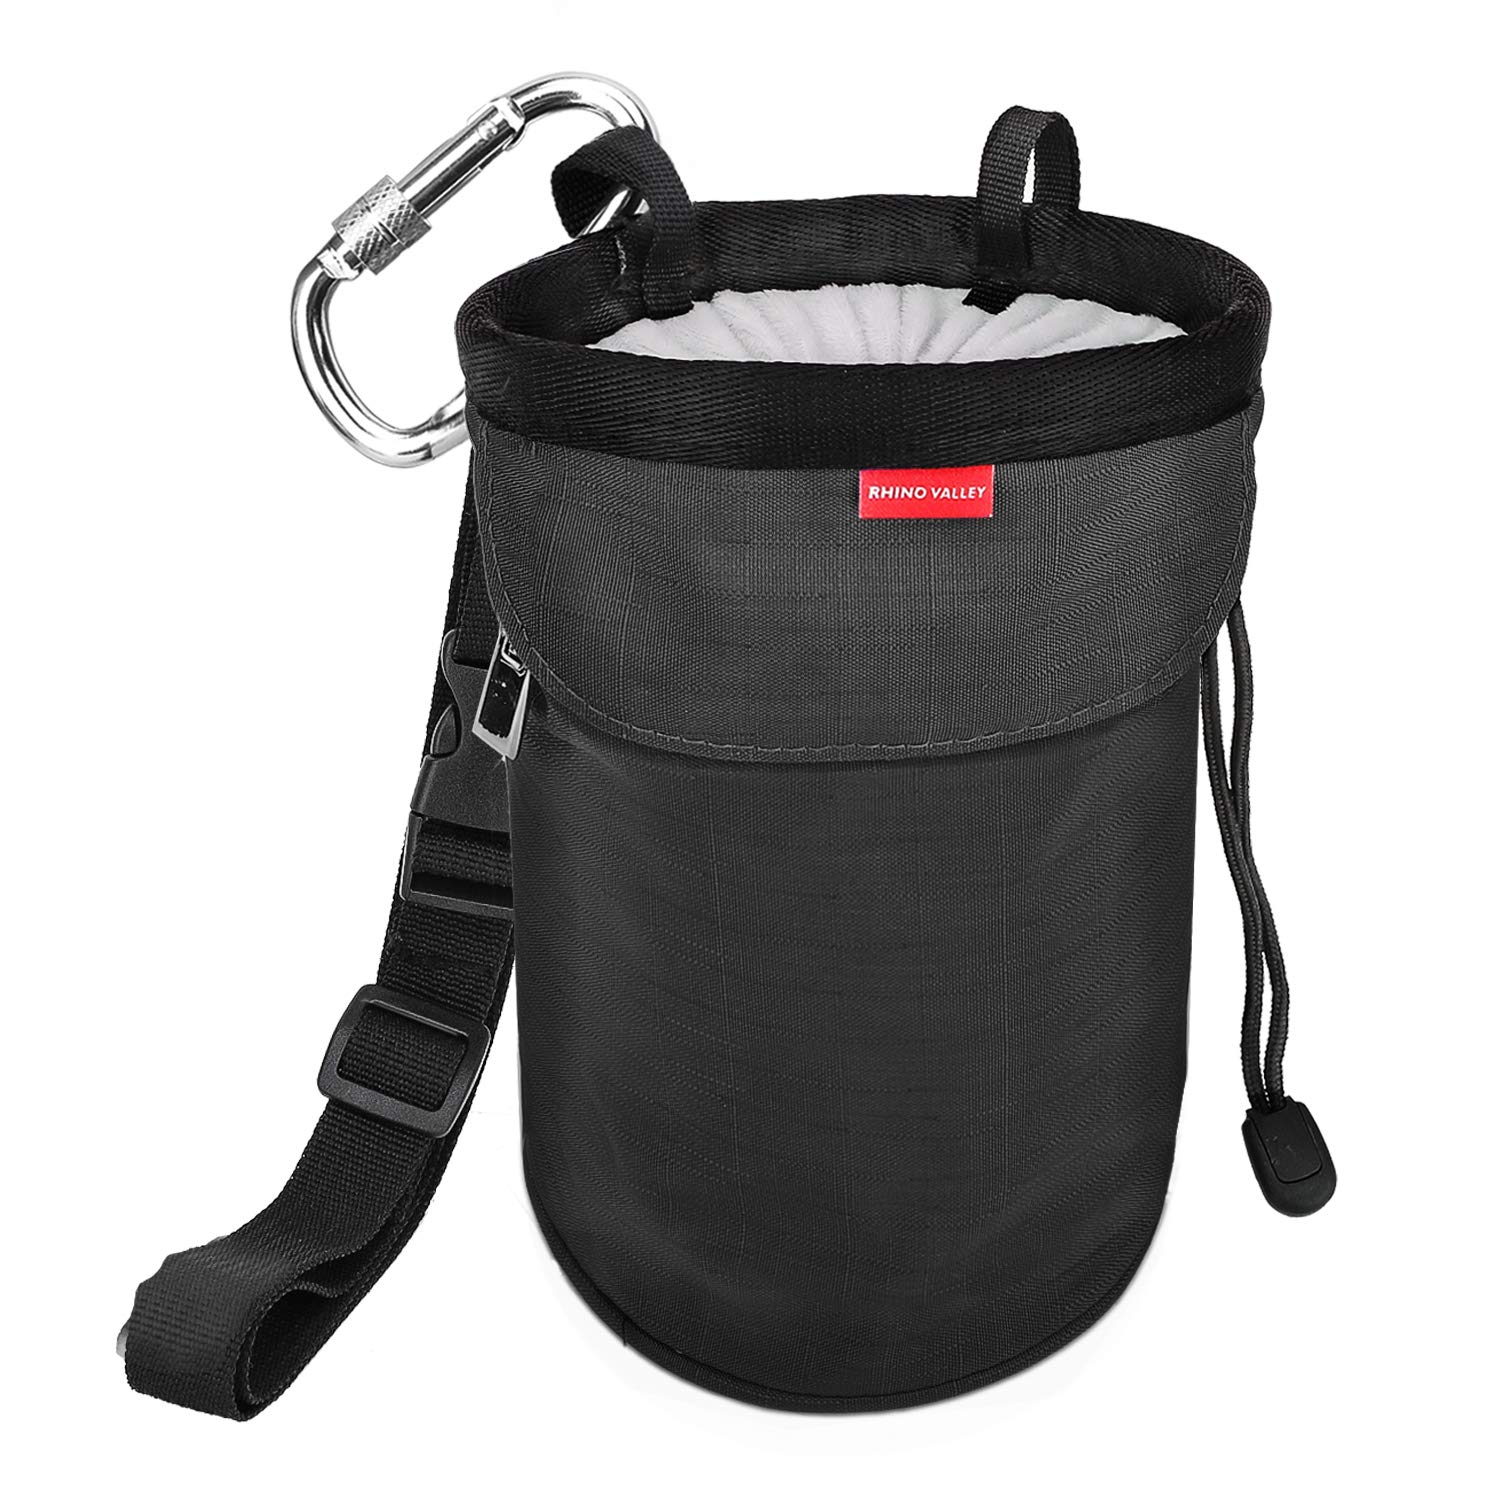 Gymnastics Weight Lifting /& More Cross Fit Carabiner Clip and Zippered Pockets for Climbing No Leak Drawstring Closure Bag with Adjustable Belt Rhino Valley Climbing Chalk Bag